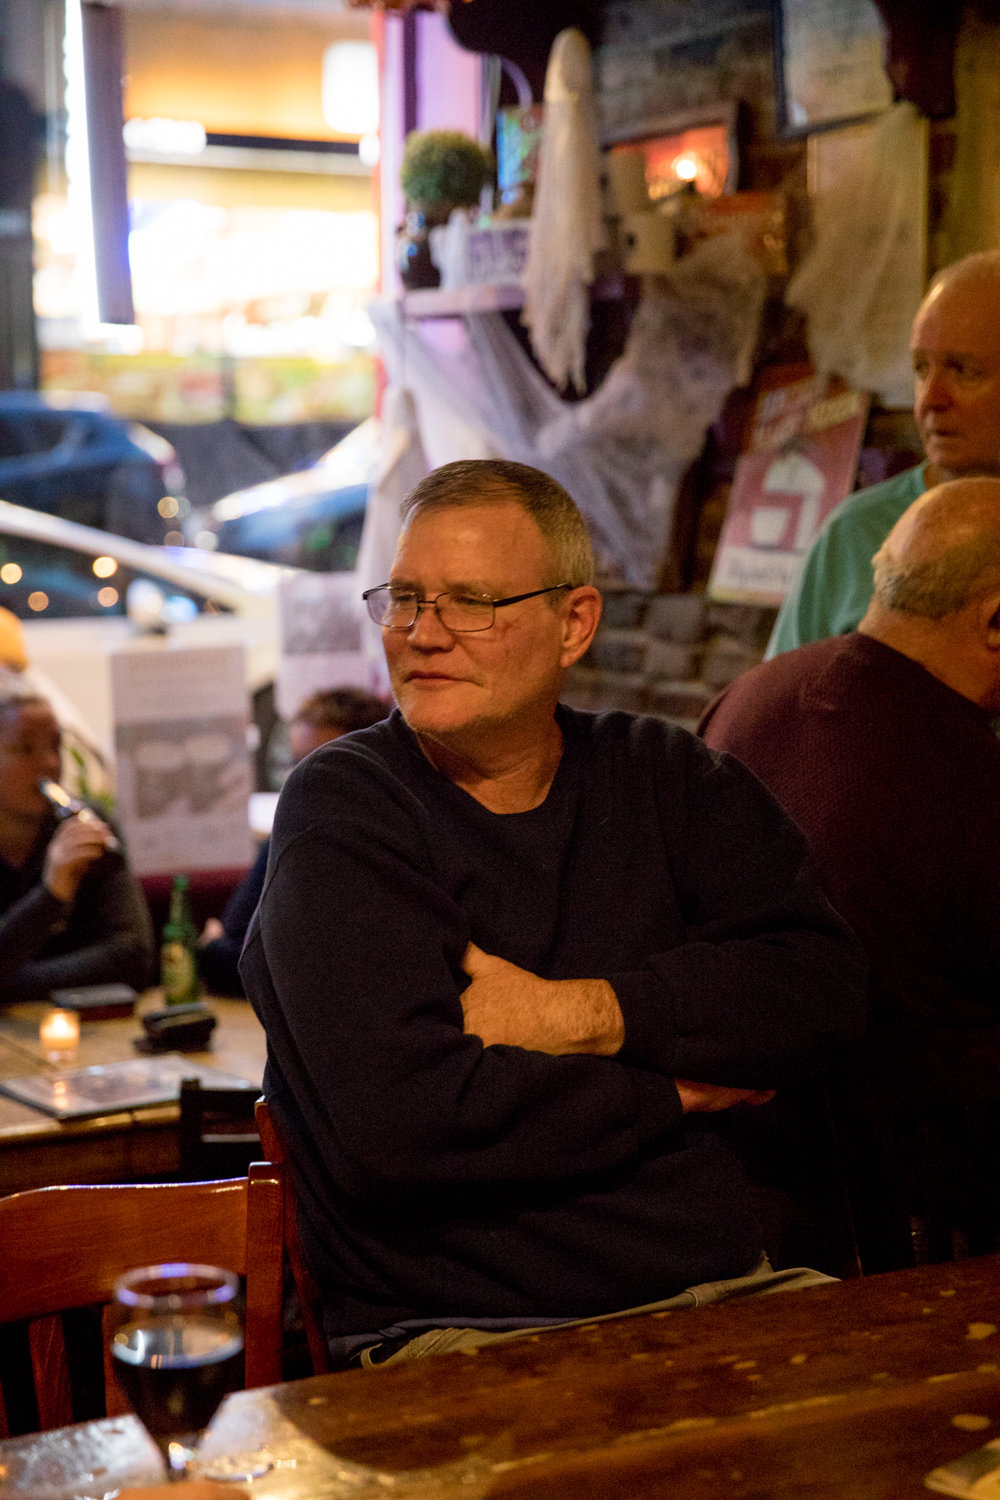 James Powers listens to Mary Courtney perform Irish music at An Beal Bocht Café on West 238th Street, where he is a regular.